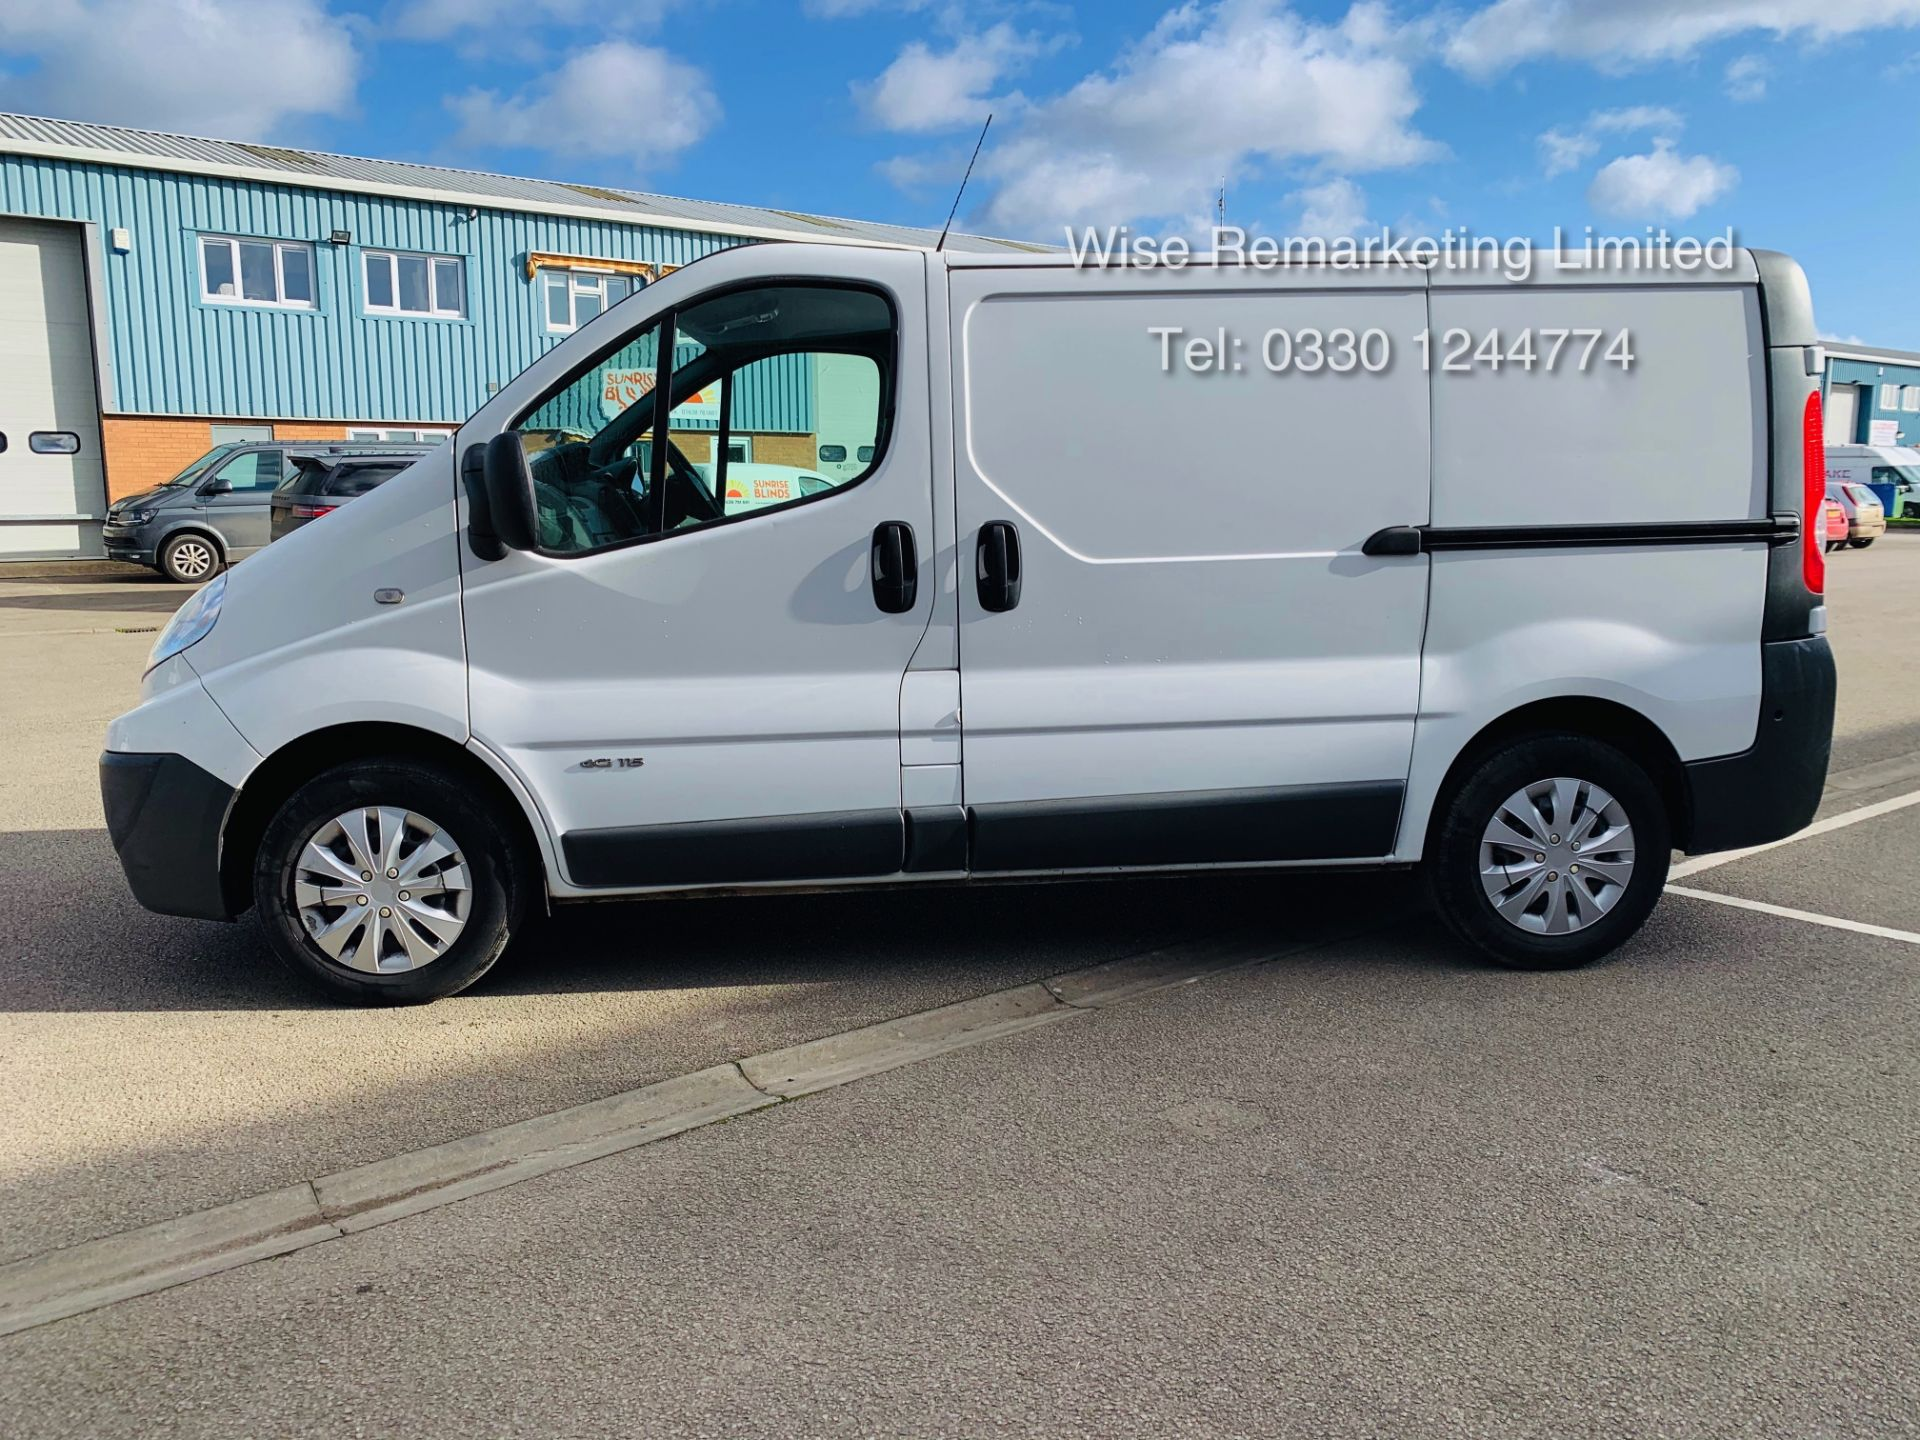 Lot 11 - Renault Trafic 2.0 DCI (115 BHP) - 6 Speed - 2014 Reg - Ply Lined -